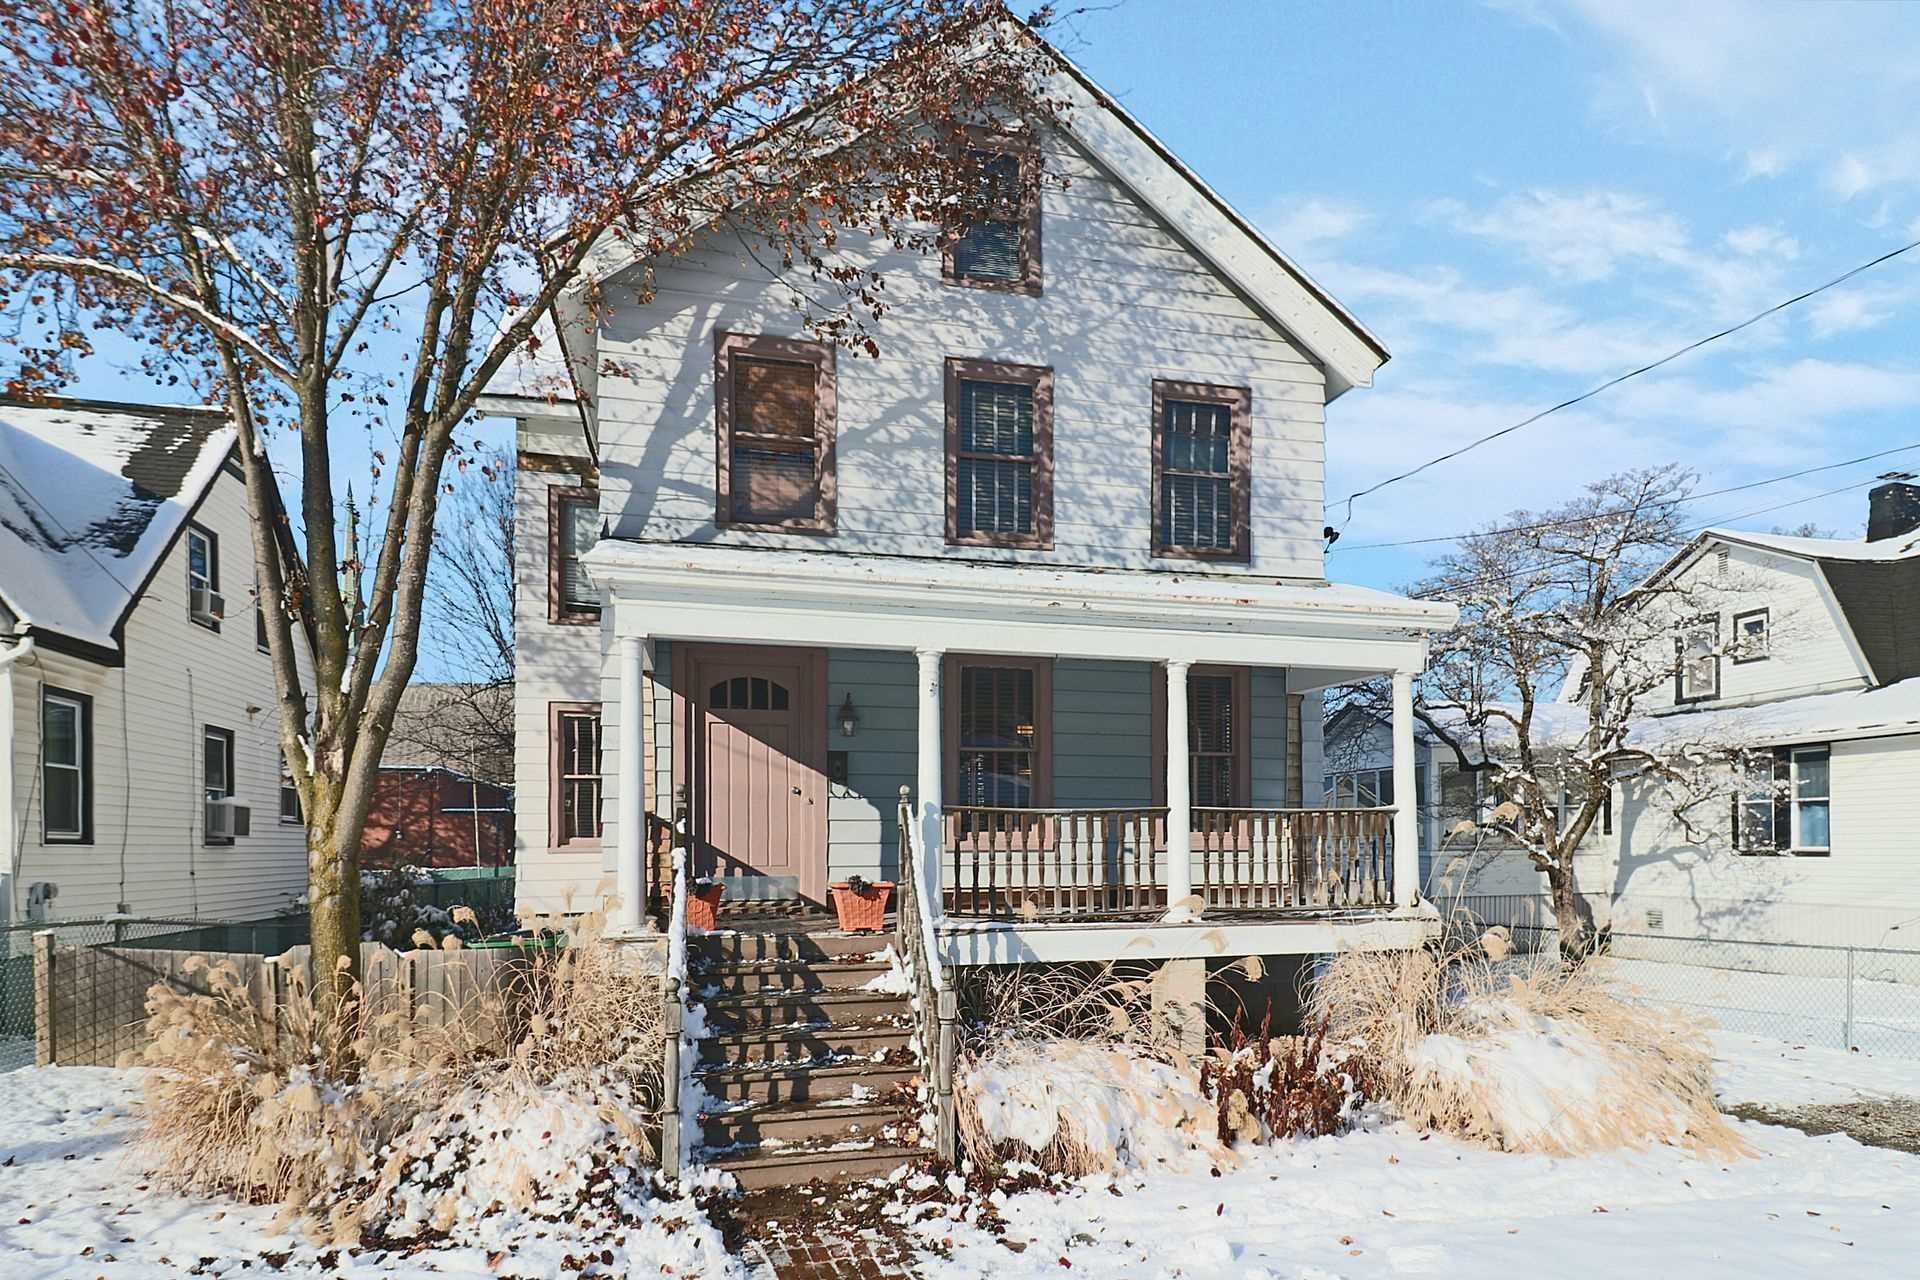 Single Family Home for Sale at 61 MESIER 61 MESIER Wappingers Falls, New York 12590 United States